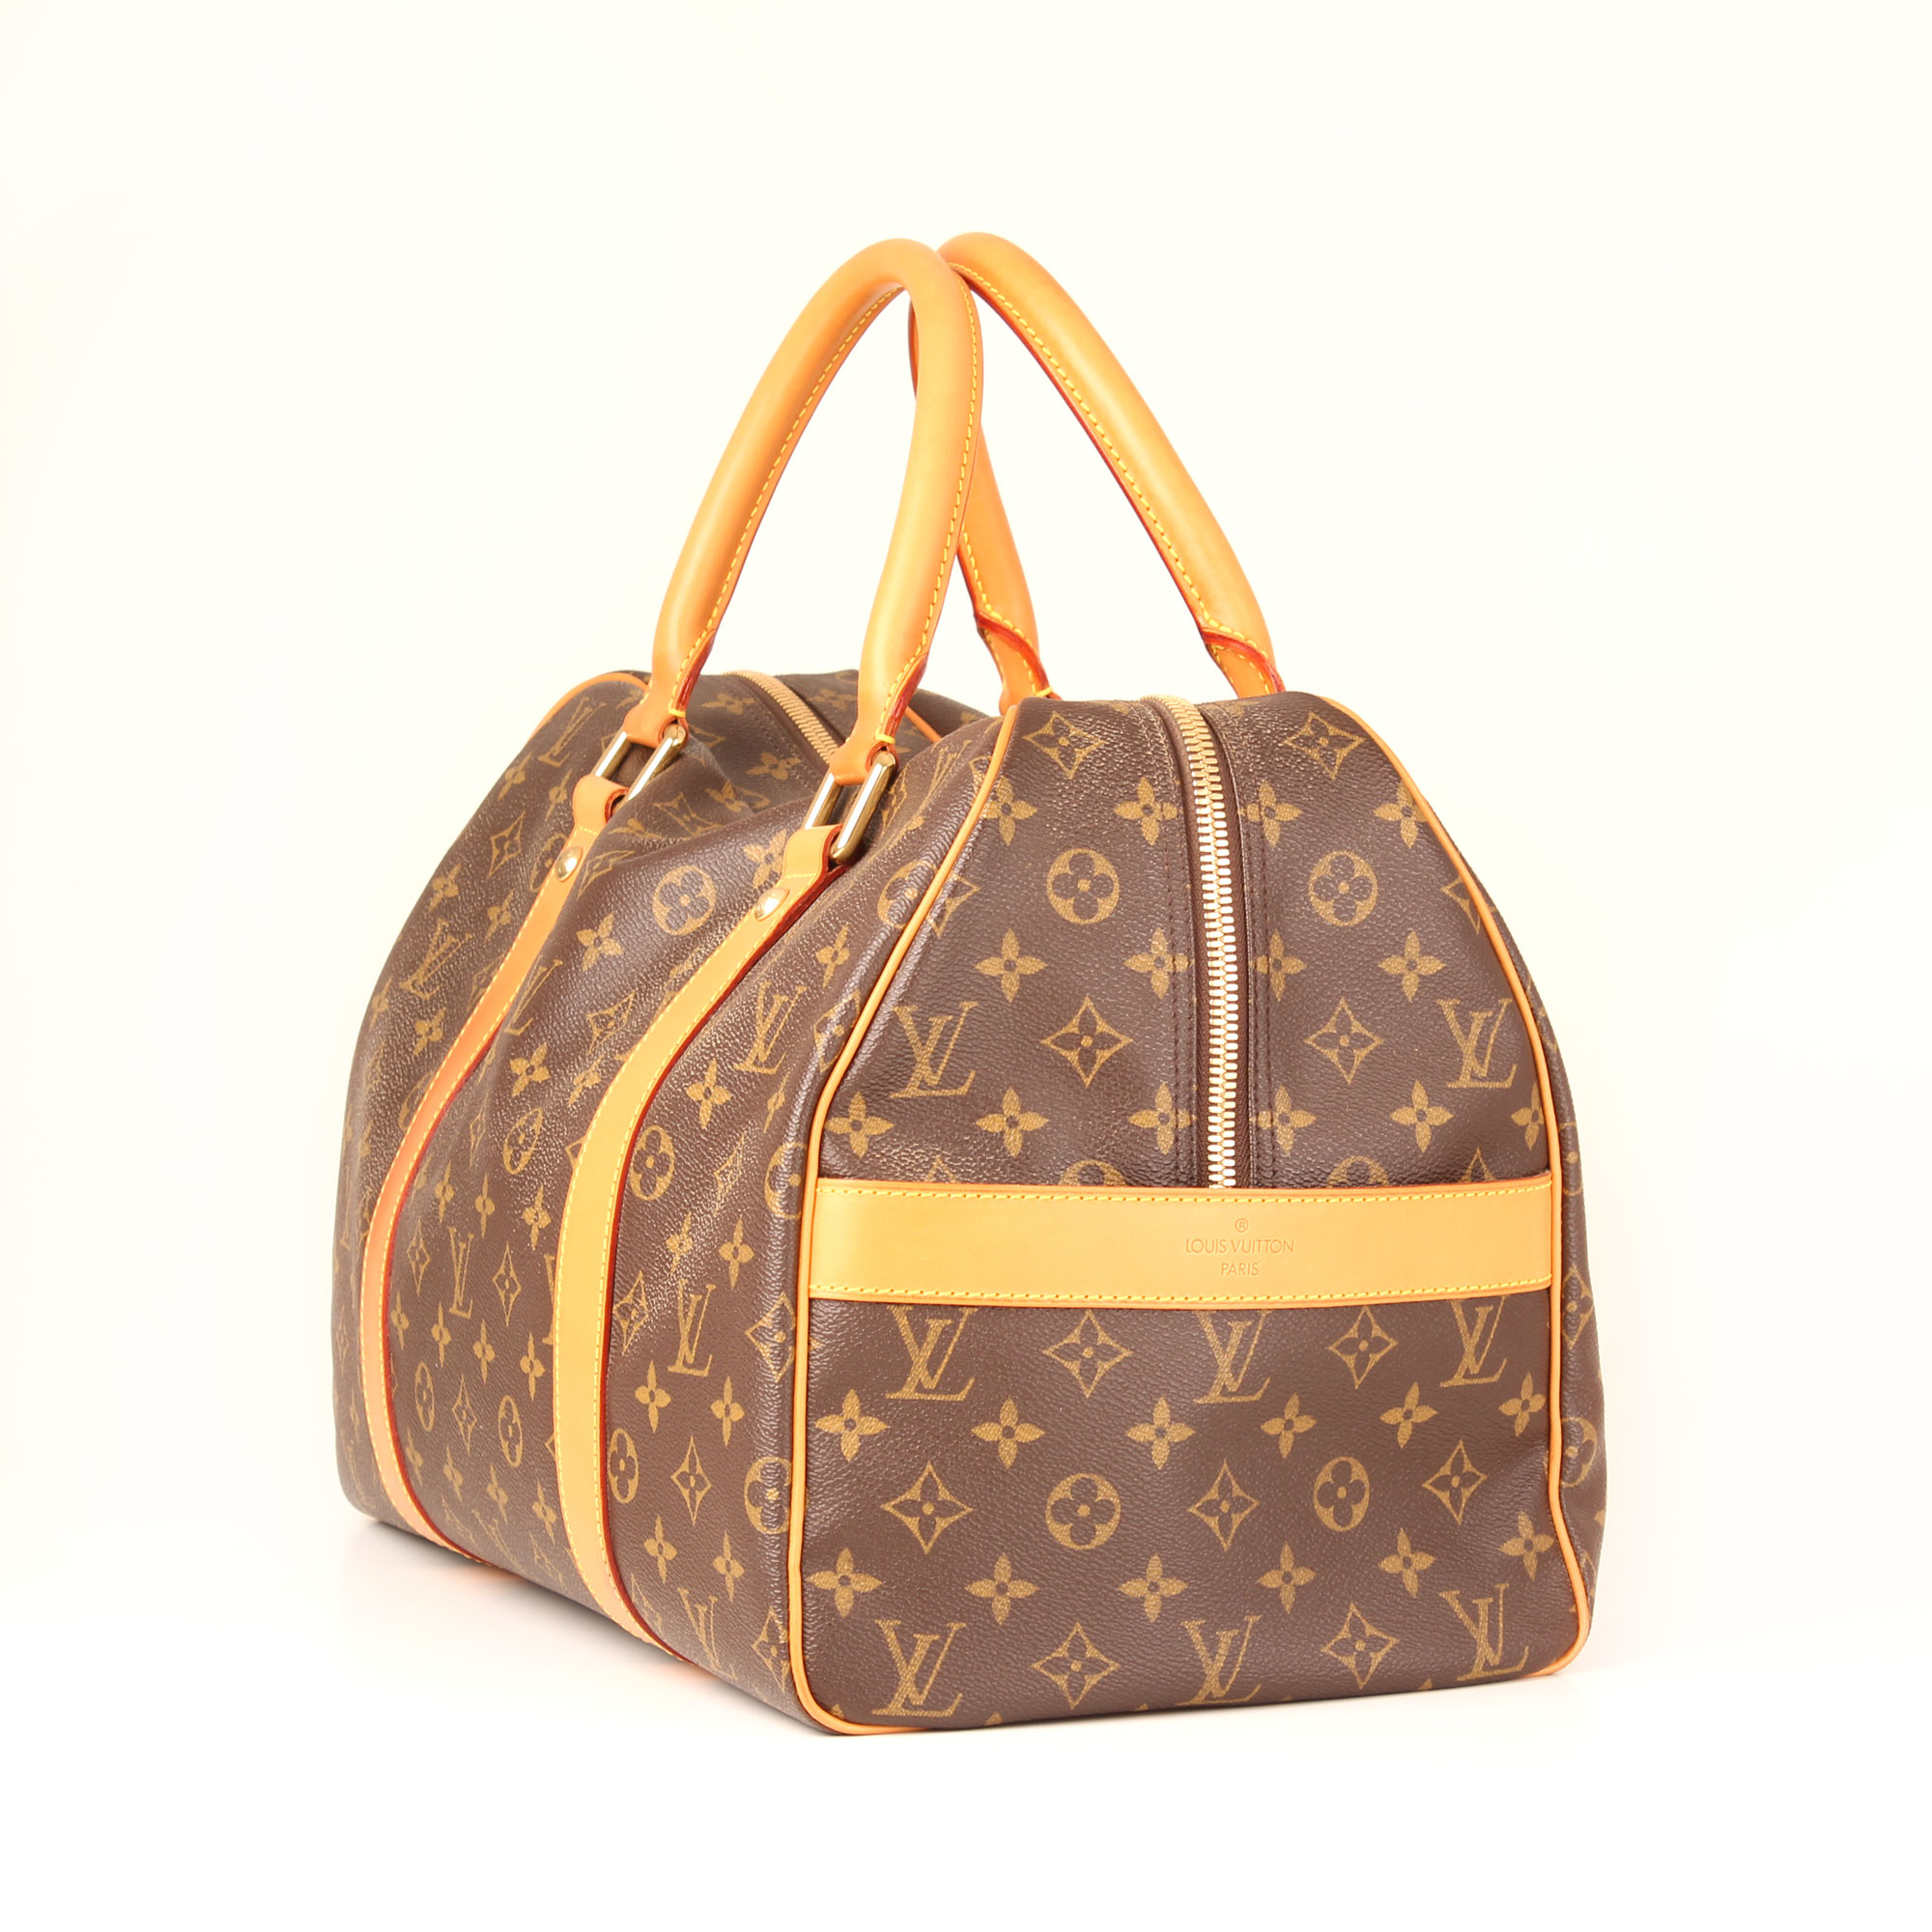 Louis Vuitton Travel Bag Carryall Monogram I CBL Bags 25a844162be38